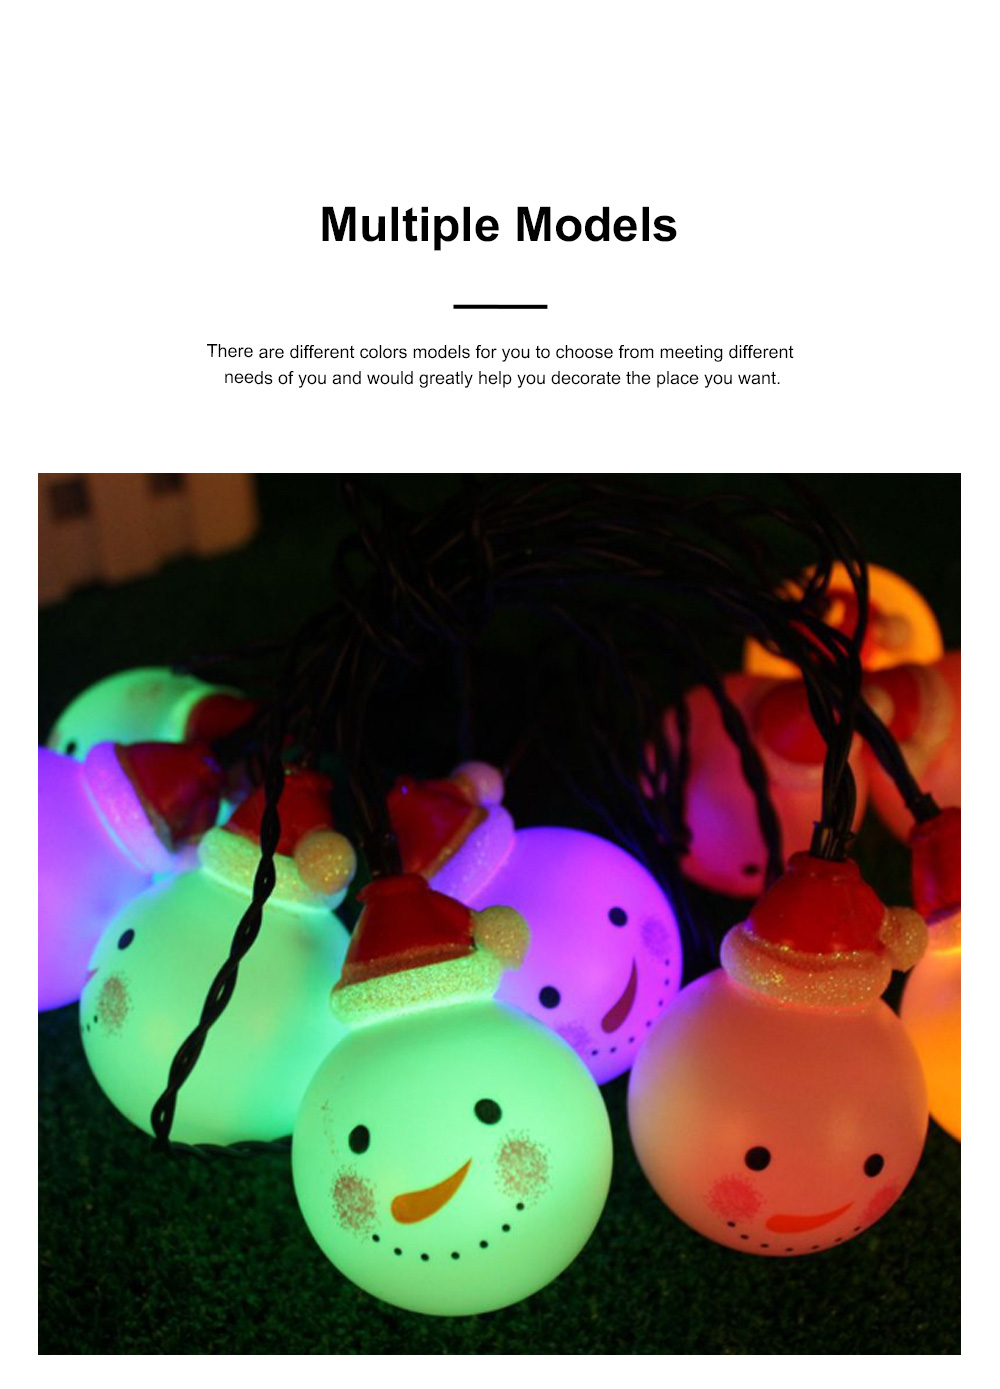 Cute Delicate 10 20 30 Leds Cozy Romantic Snowman Lights String Christmas Lamps Party Courtyard Decoration Ornaments 1